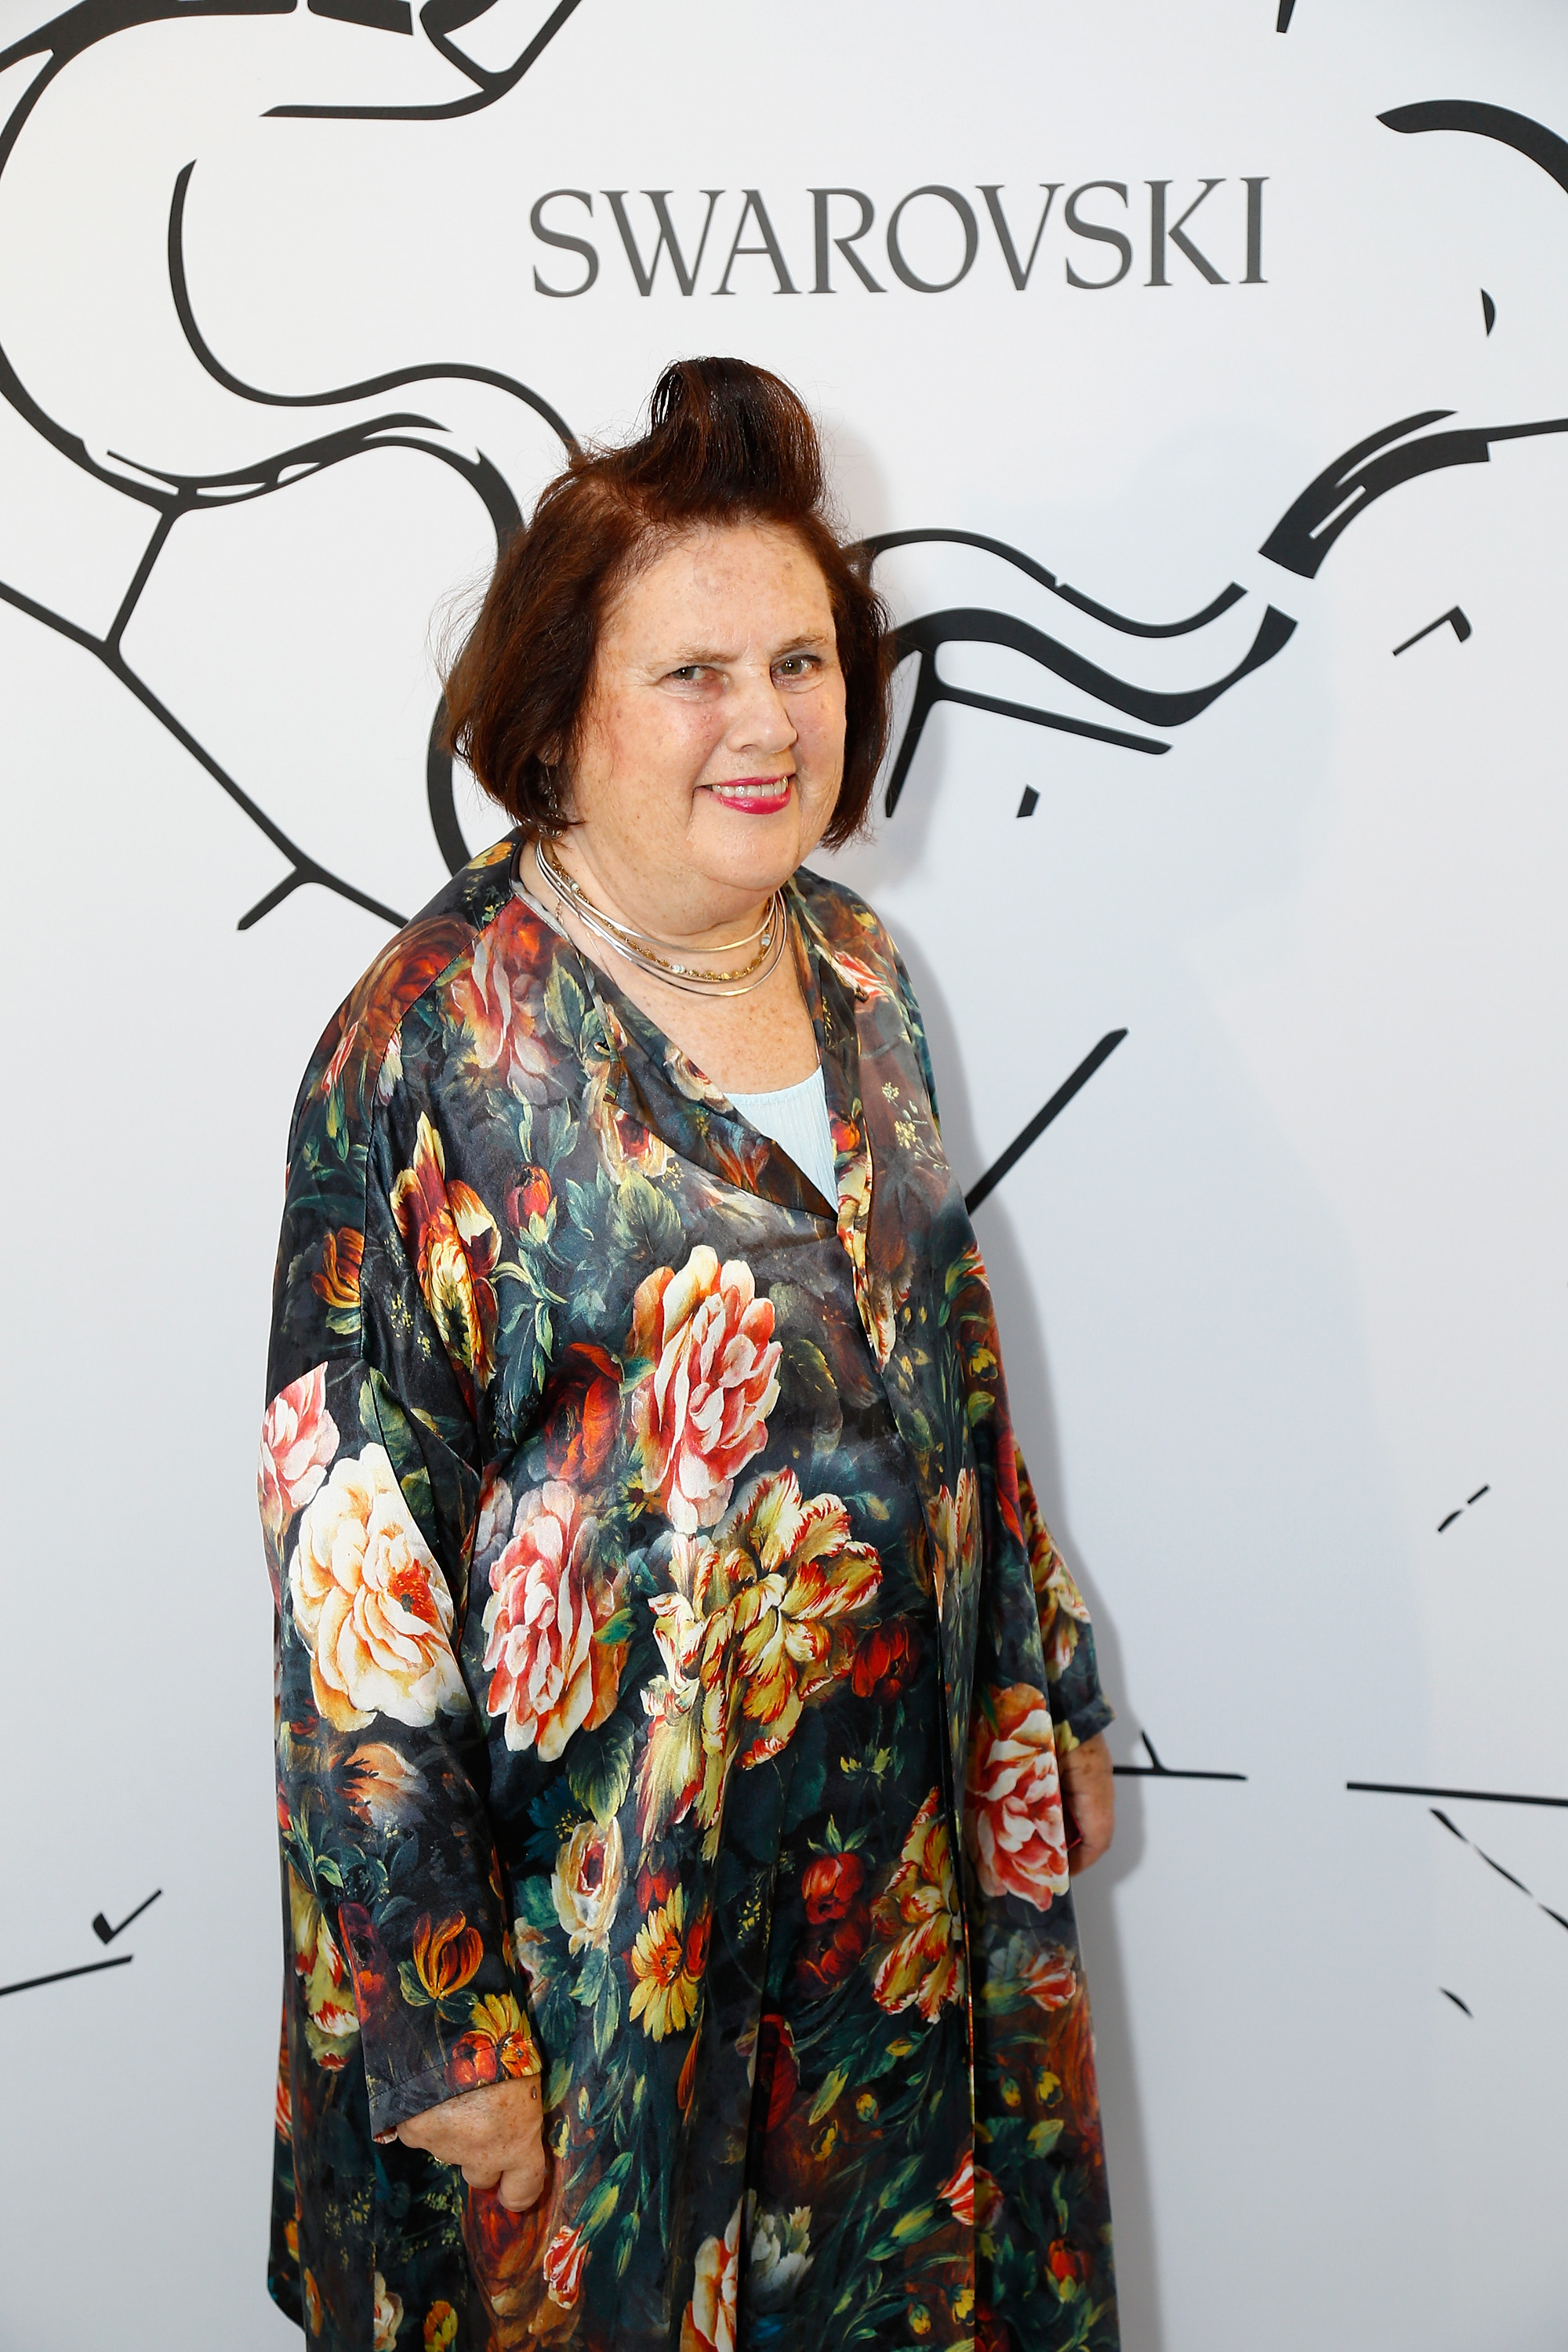 PARIS, FRANCE - JULY 03:  Suzy Menkes attends the Iris Van Herpen X Swarovski Cocktail Haute Couture Fall/Winter 2017-2018 show as part of Haute Couture Paris Fashion Week on July 3, 2017 in Paris, France.  (Photo by Julien Hekimian/Getty Images) *** Local Caption *** Suzy Menkes